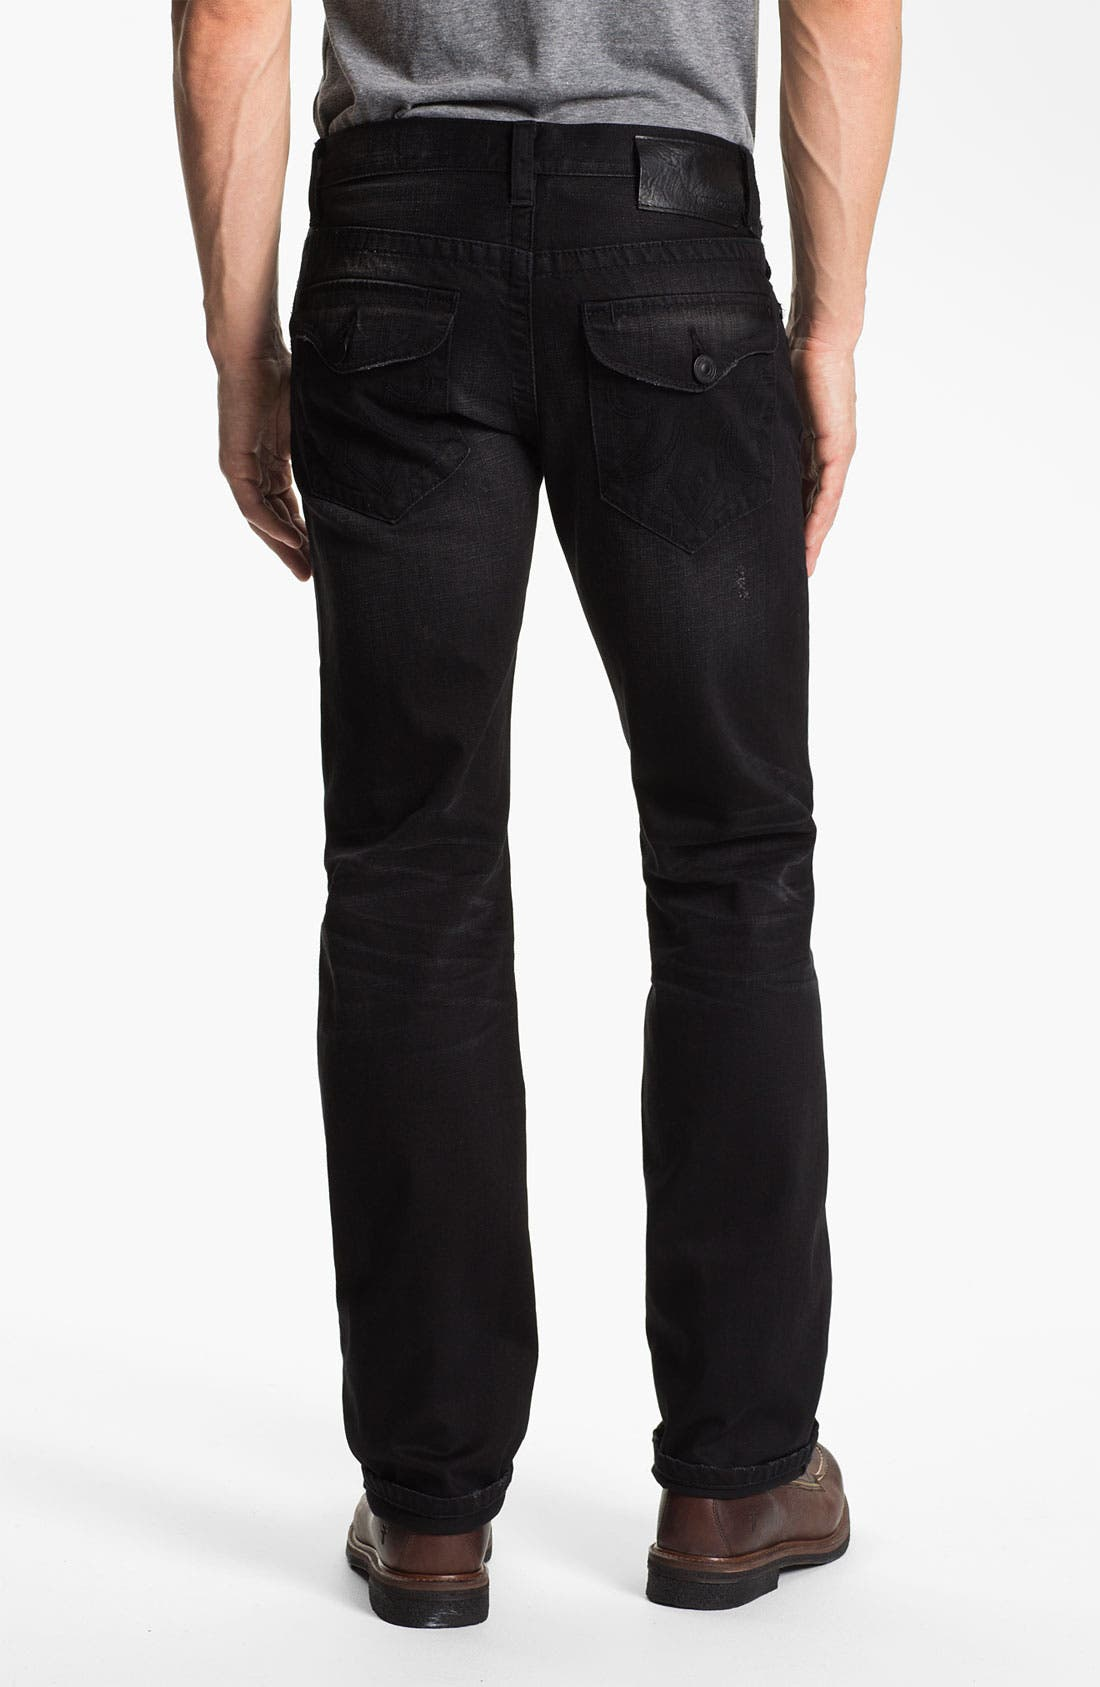 Alternate Image 1 Selected - MEK Denim 'Riley' Straight Leg Jeans (Miner Black)